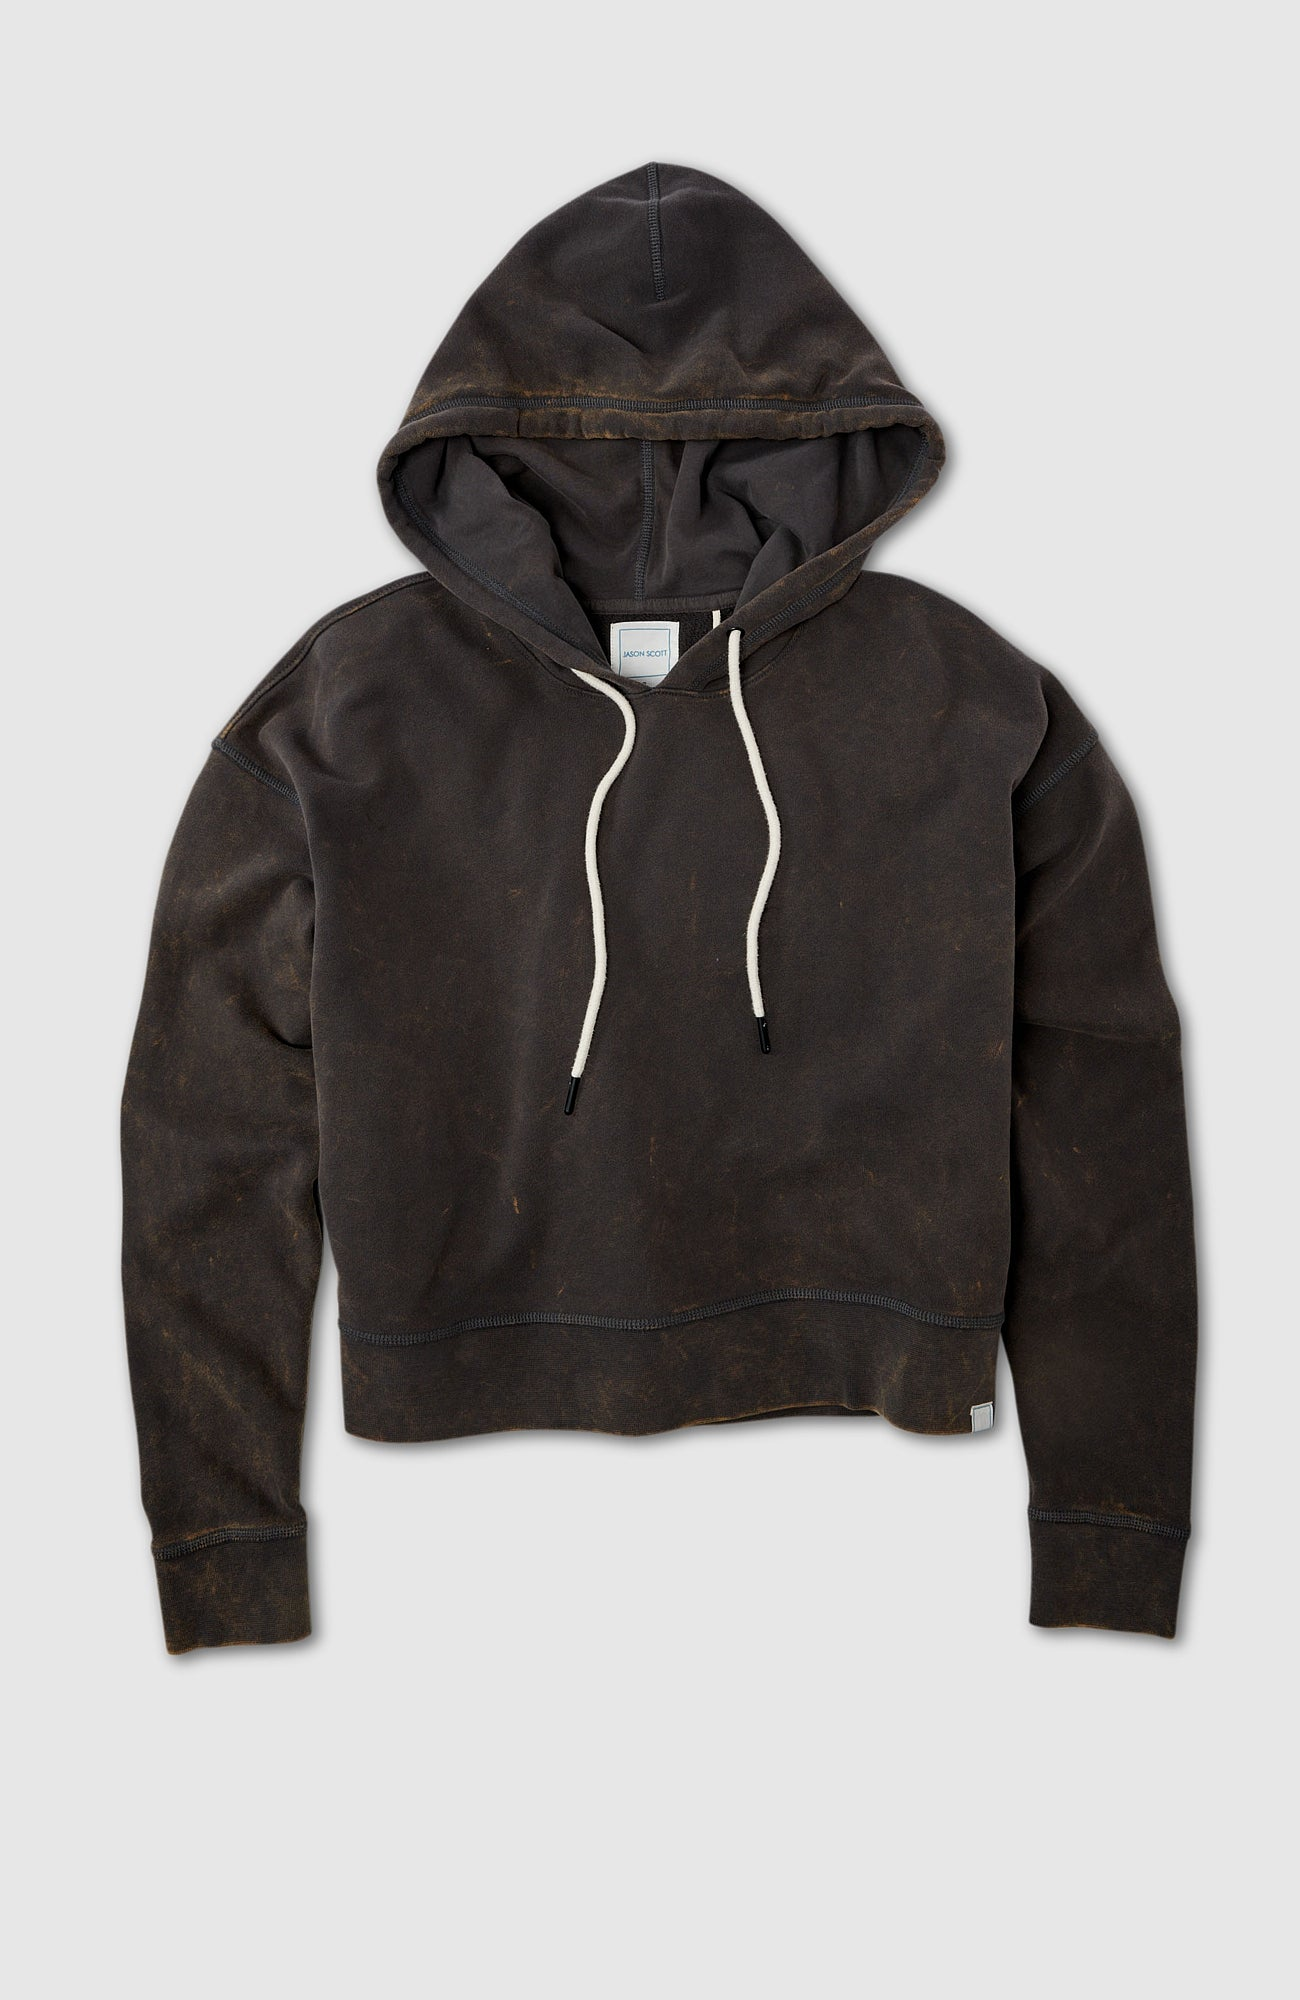 Drop Shoulder Hoodie - Charcoal Multi